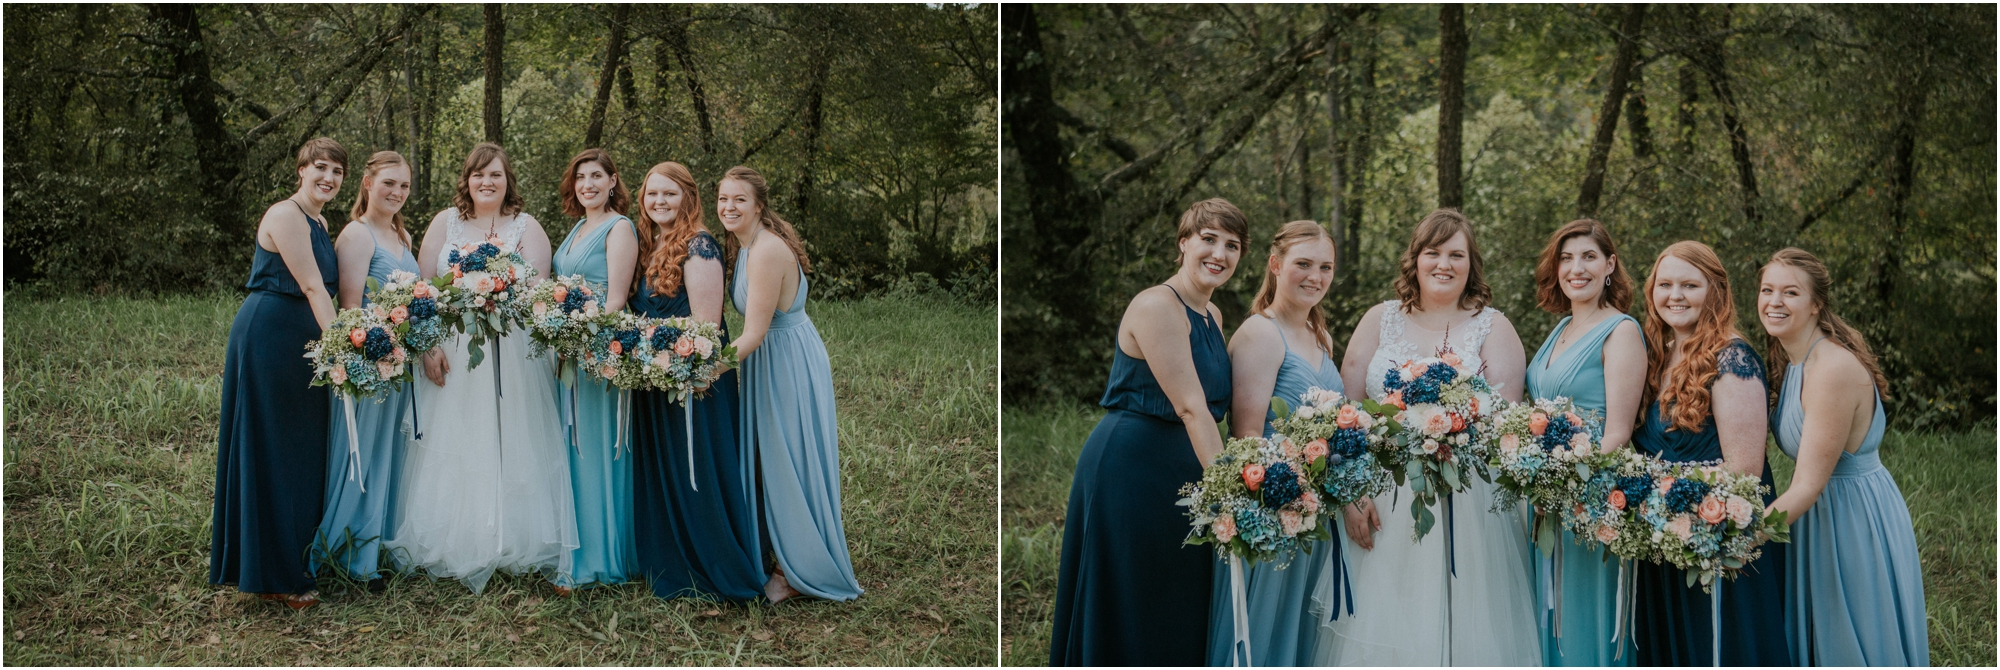 caryville-robbins-middle-tennessee-intimate-cozy-fall-navy-rustic-backyard-wedding_0056.jpg